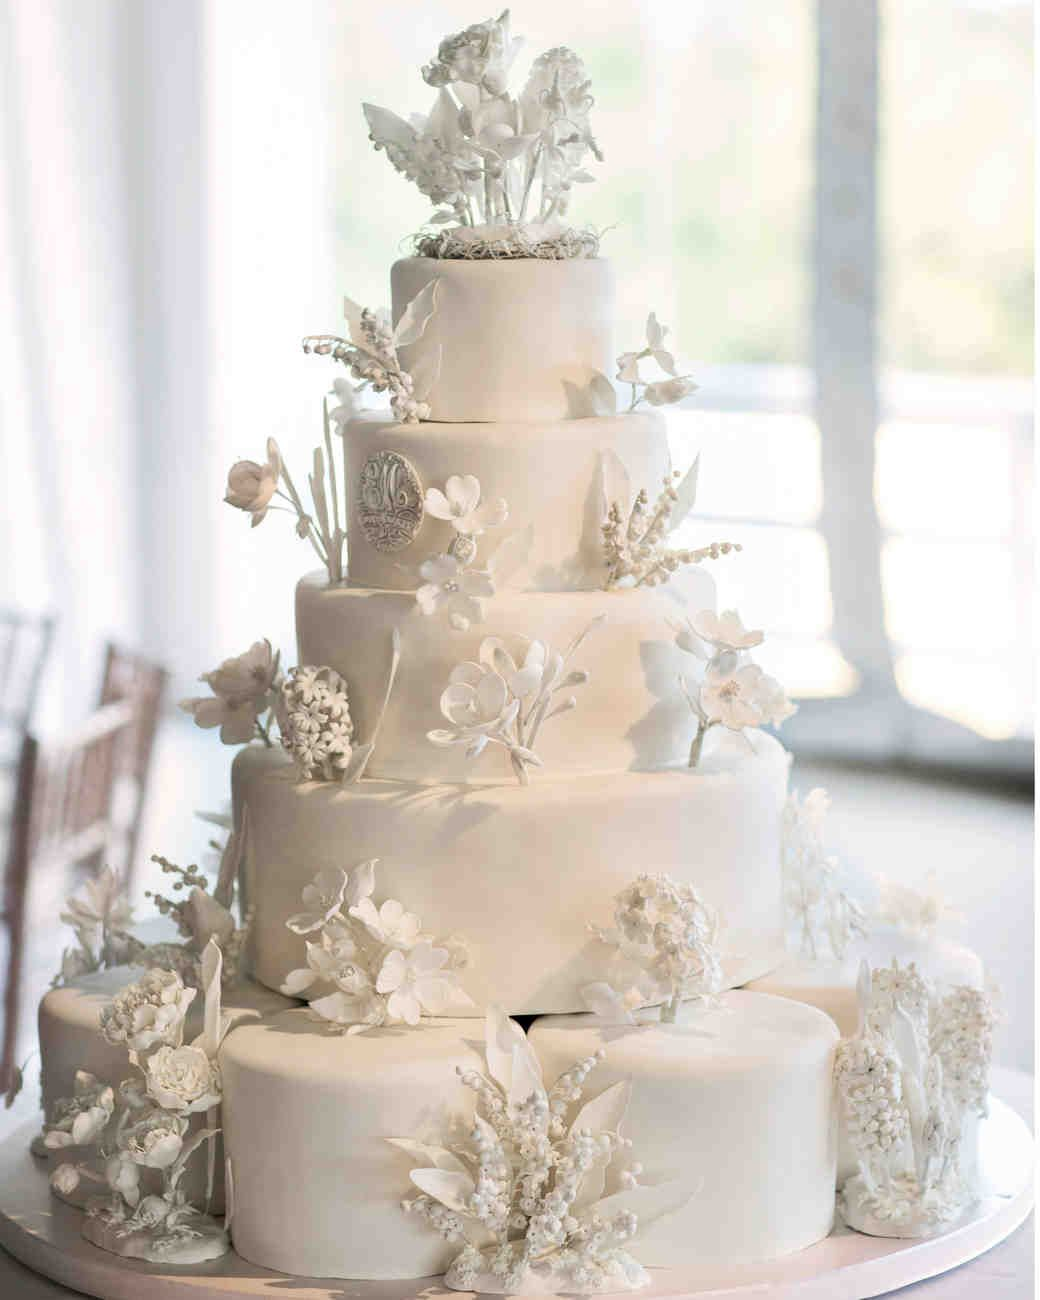 Five Tiered White Wedding Cake With 3D Edible Hand Crafted Flowers